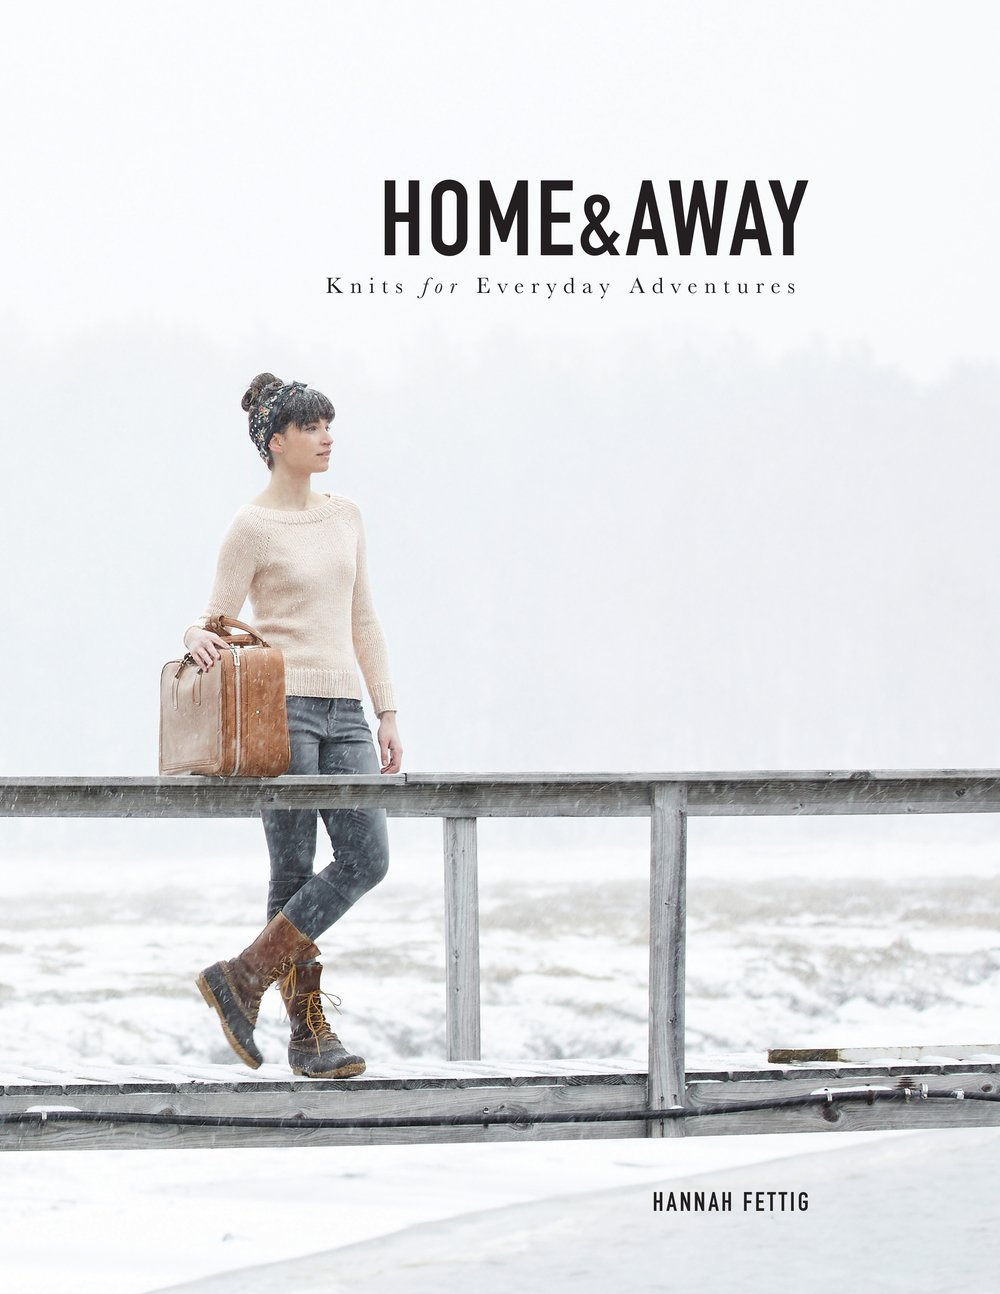 Home & Away Knits for Everyday Adventures by Hannah Fettig